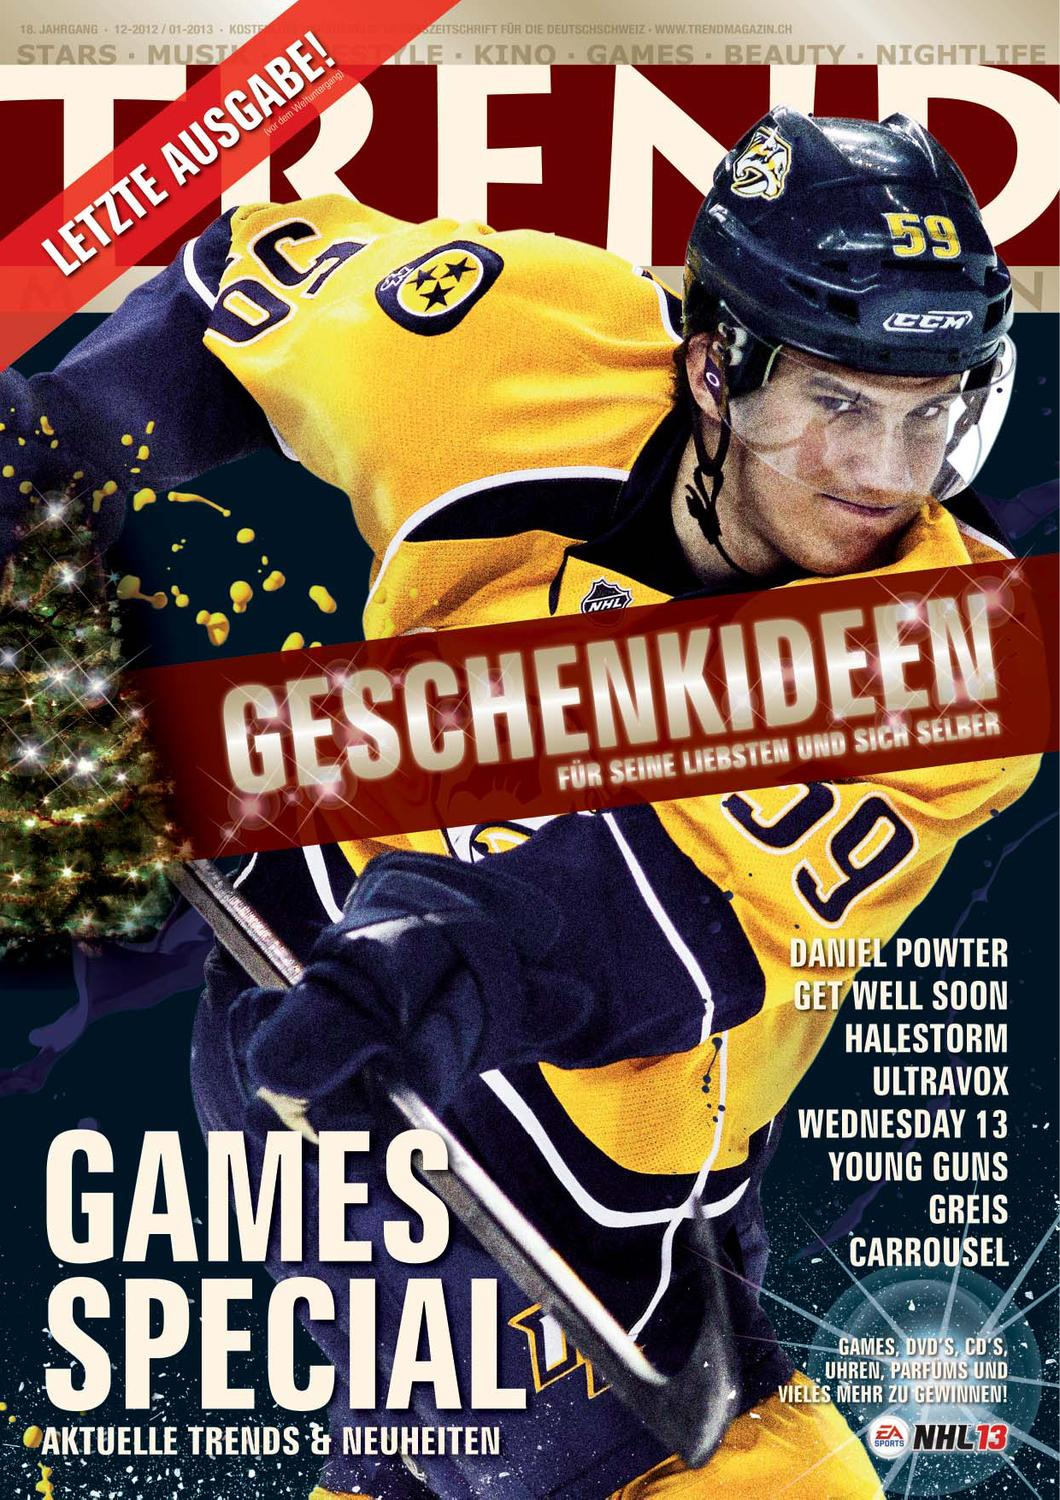 3f96af0531d200 TREND MAGAZIN 12/2012 by TREND MAGAZIN - issuu